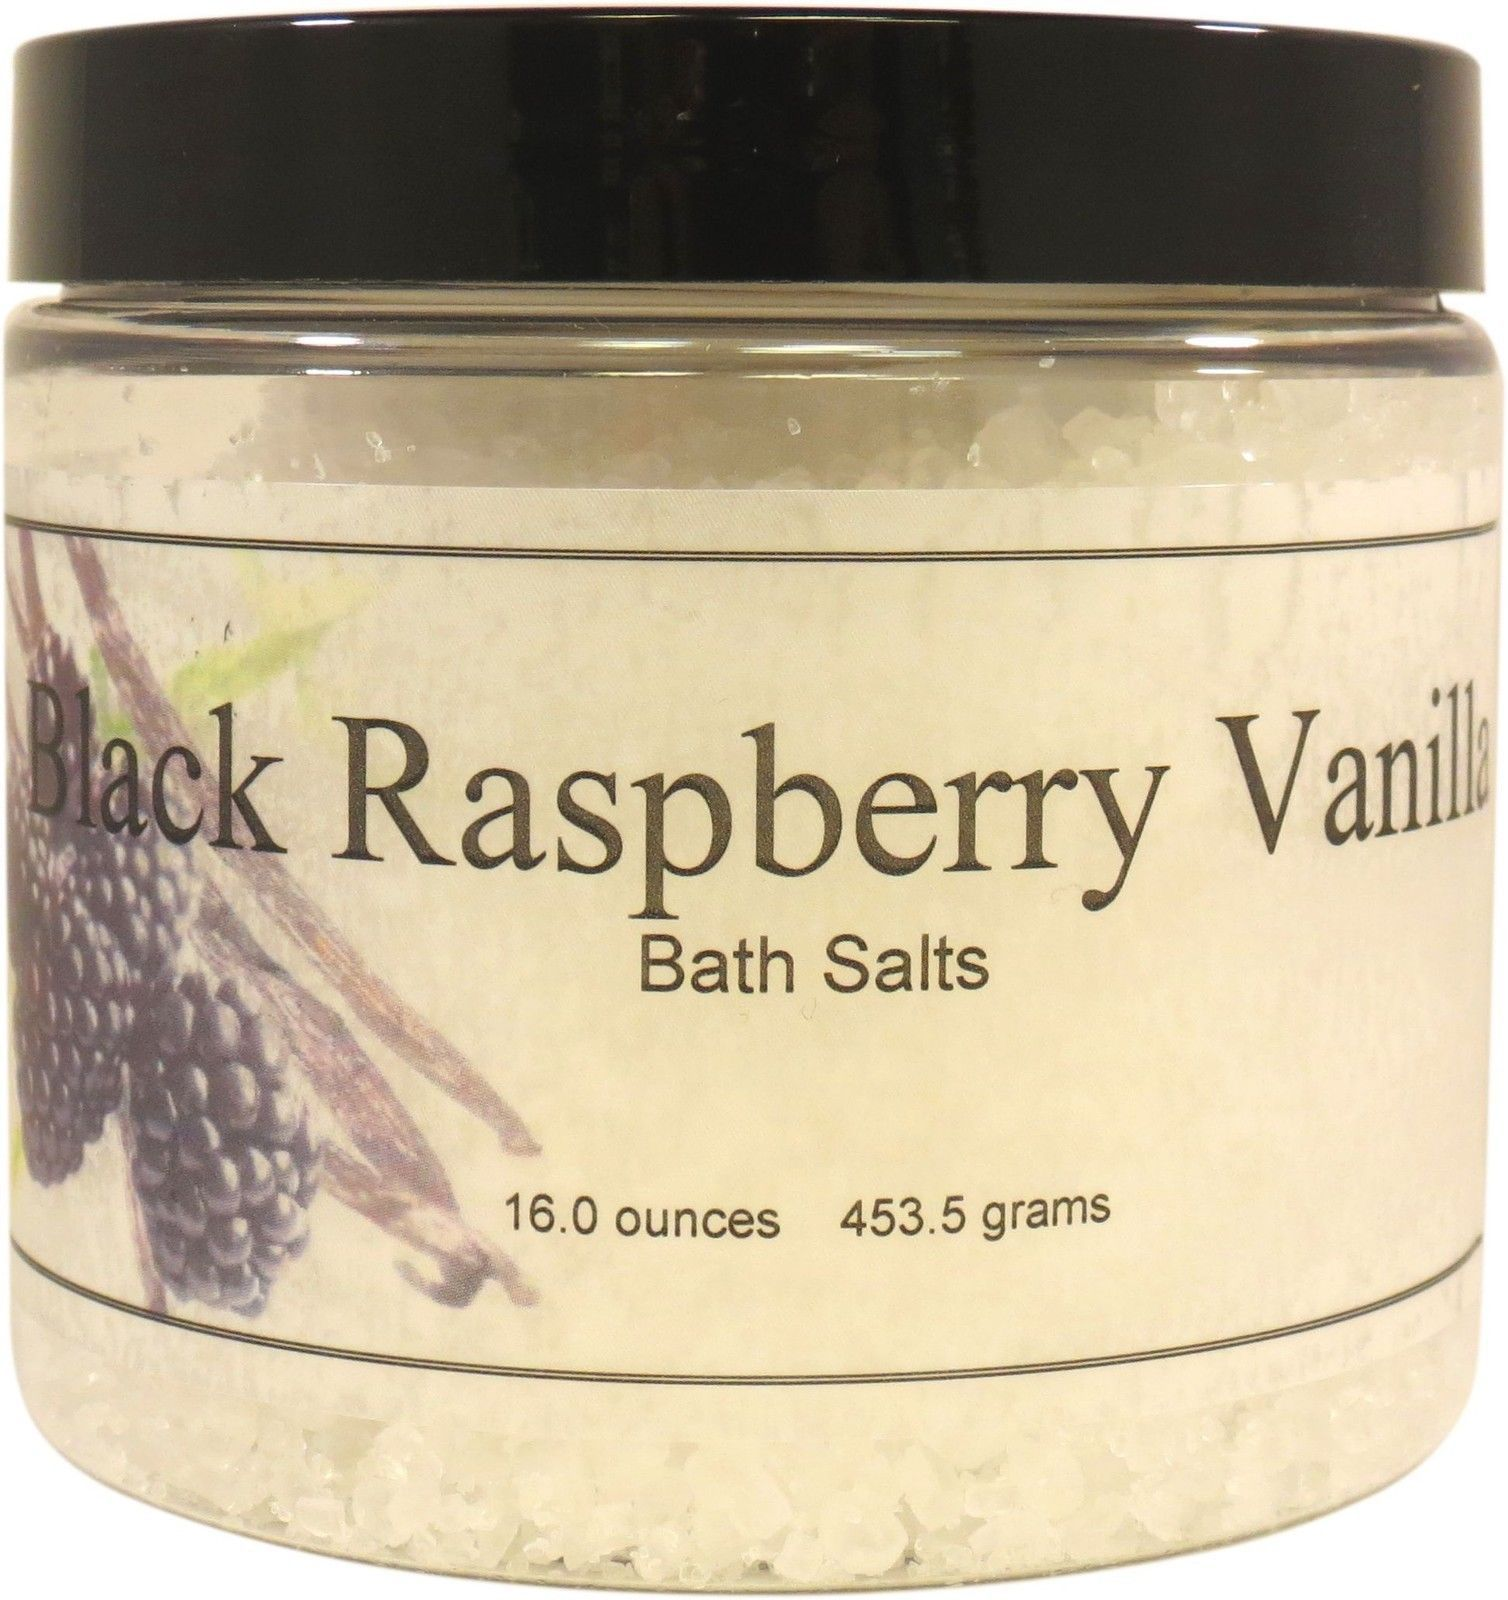 Black Raspberry Vanilla Bath Salts